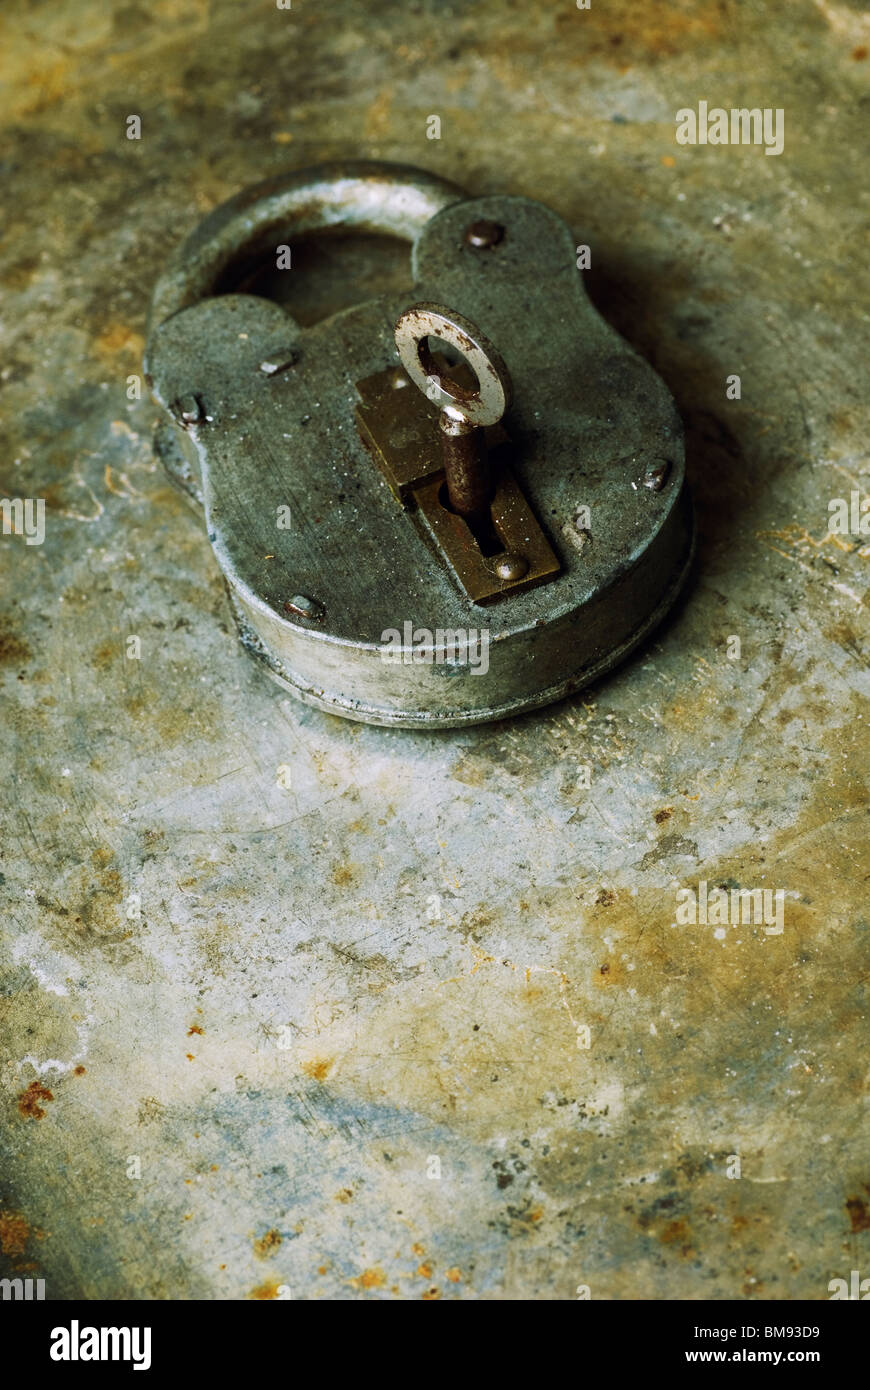 Old fashioned rusty padlock with key over a grungy background - Stock Image